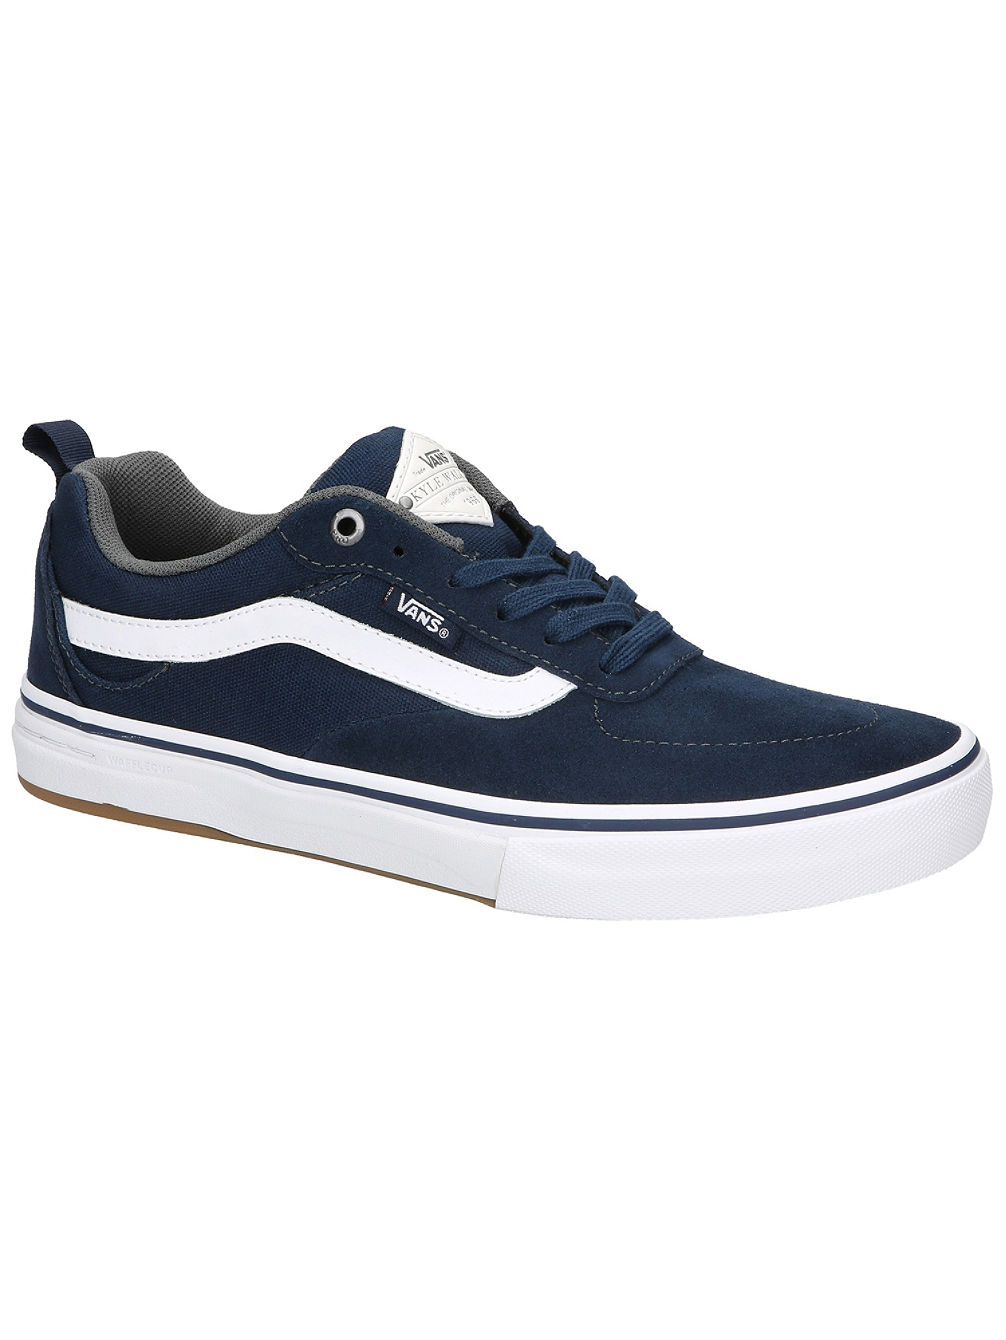 Buy Vans Kyle Walker Pro Skate Shoes online at blue-tomato.com ad9b690557